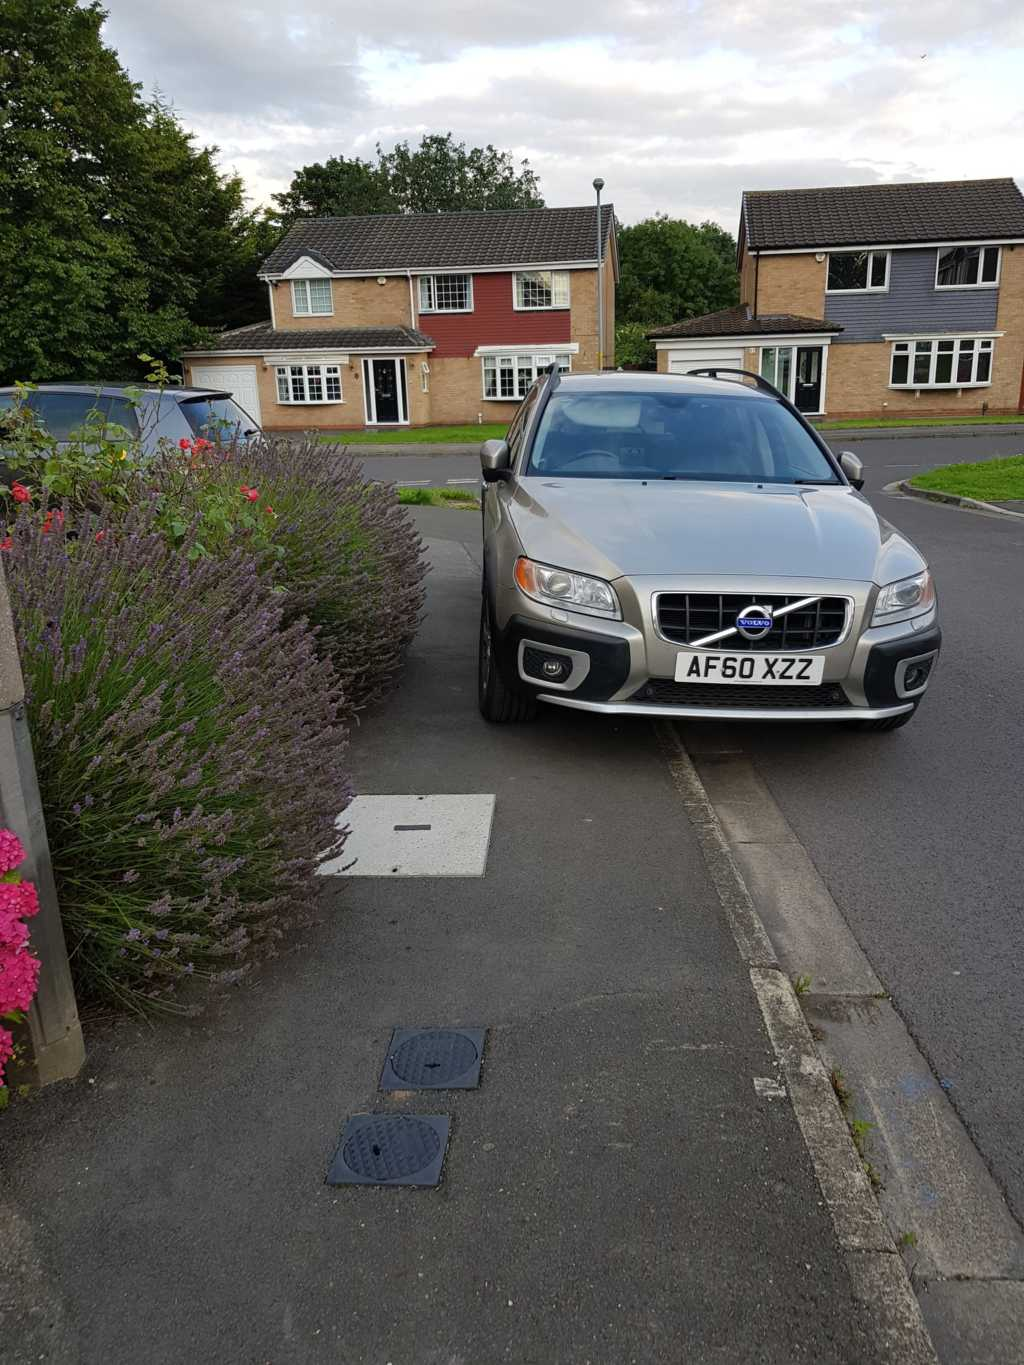 AF60 XZZ displaying Inconsiderate Parking